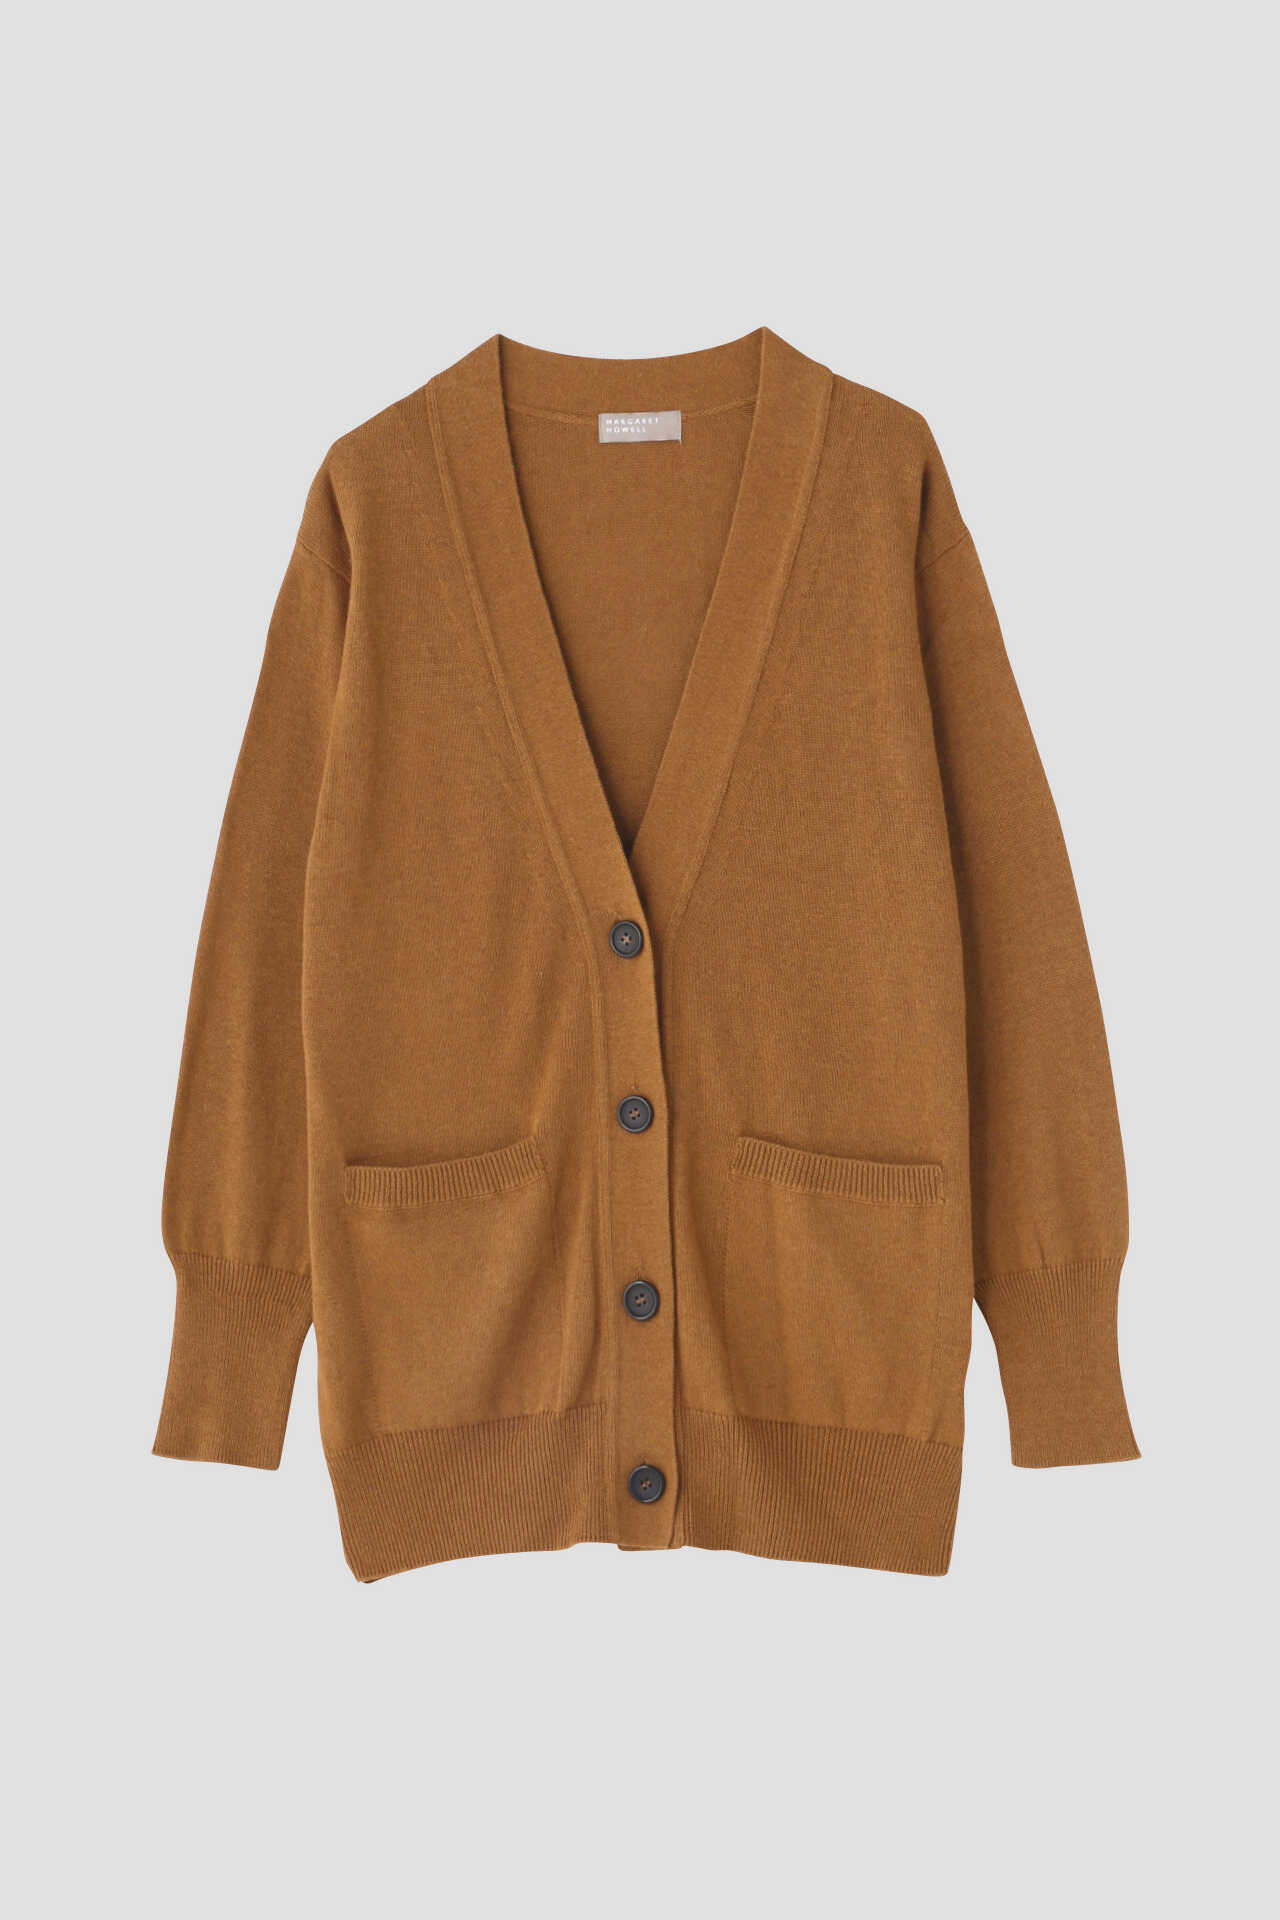 COTTON CASHMERE CARDIGAN10